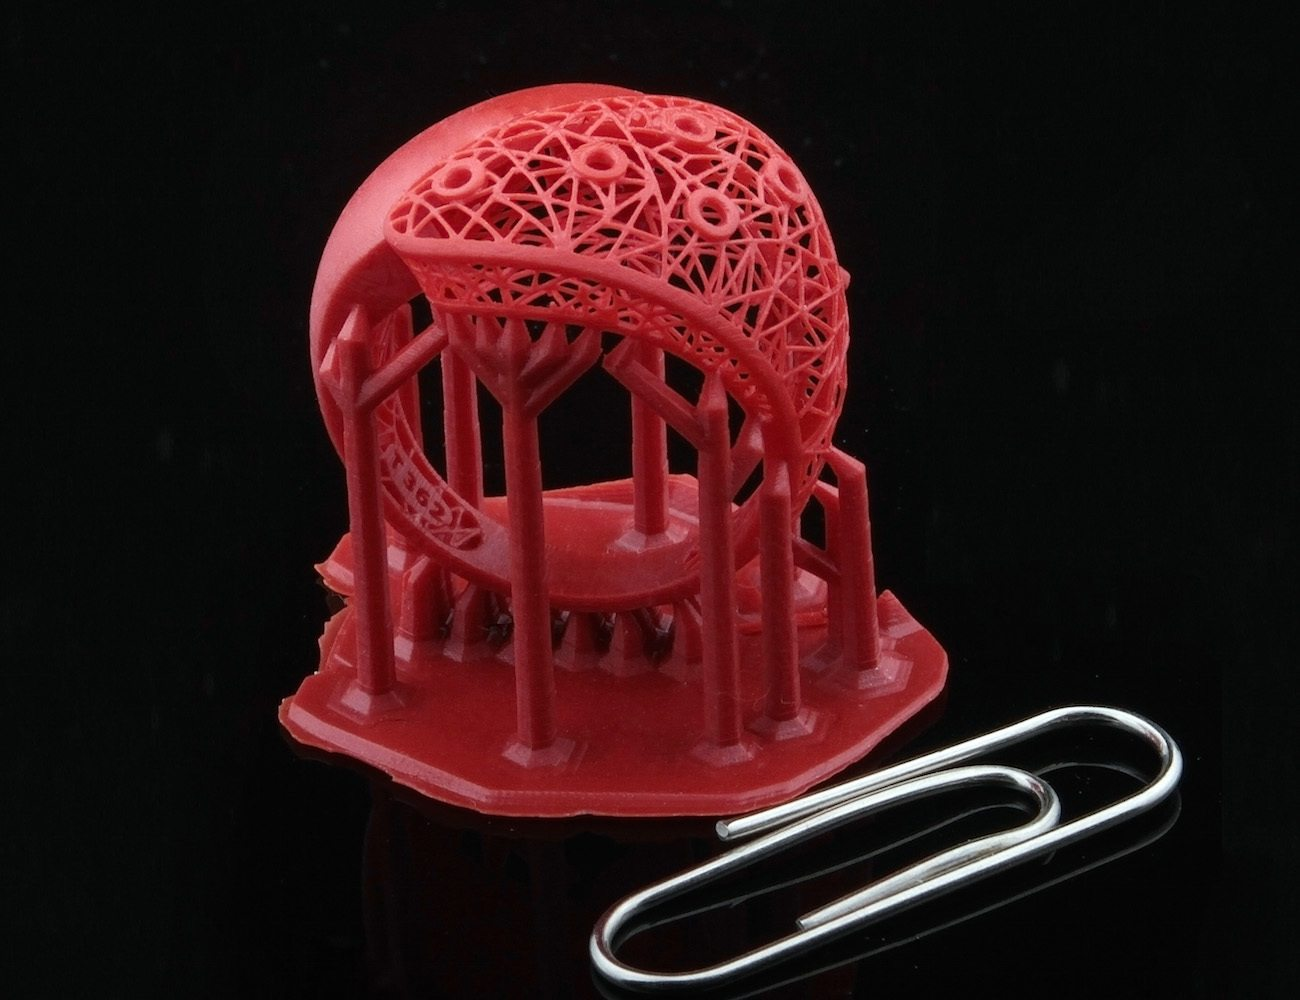 M-Jewelry – A Professional UV-LED, Wireless DLP 3D Printer